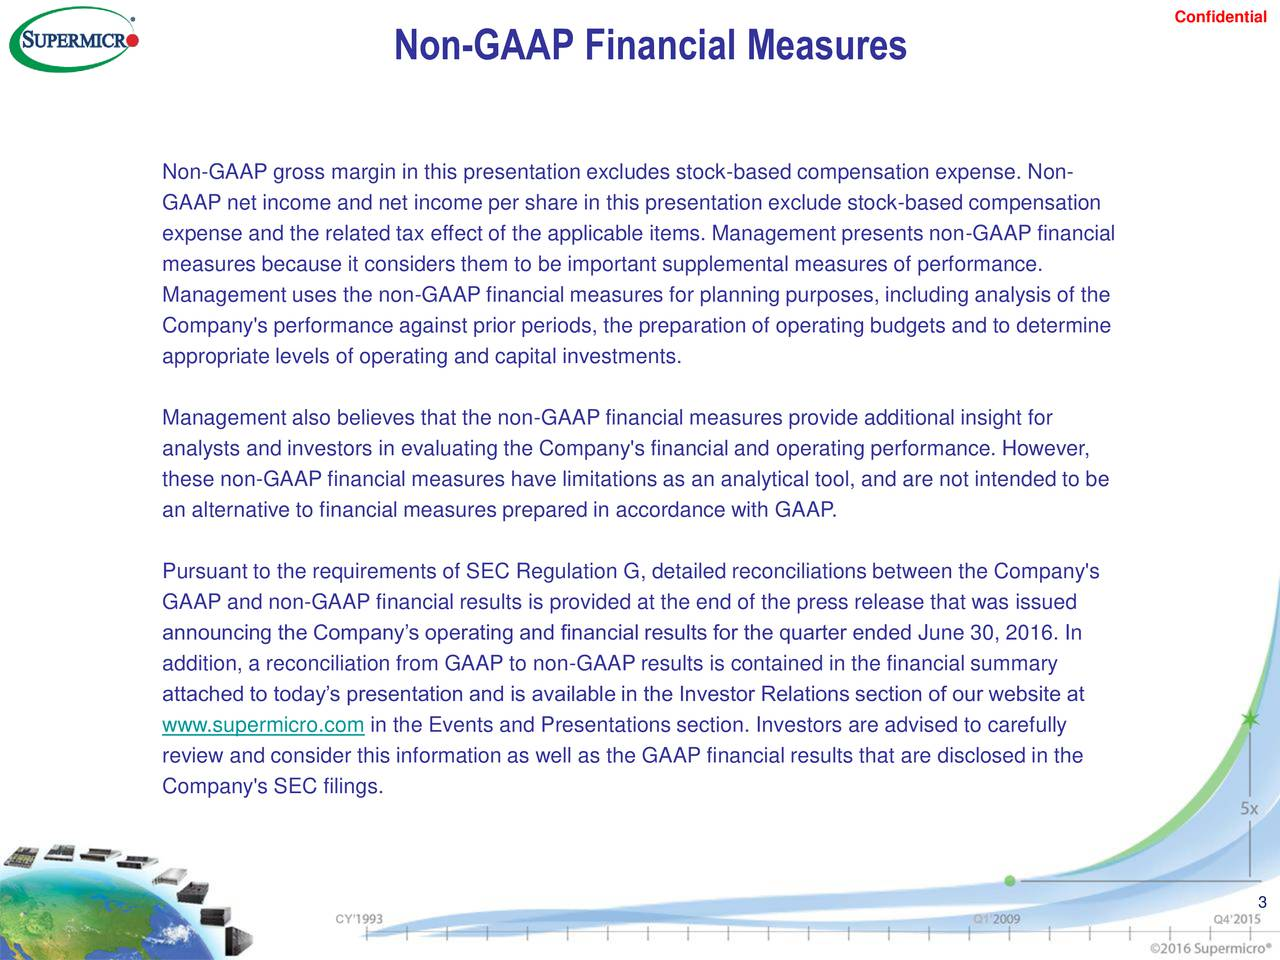 Non-GAAP Financial Measures Non-GAAP gross margin in this presentation excludes stock-based compensation expense. Non- GAAP net income and net income per share in this presentation exclude stock-based compensation expense and the related tax effect of the applicable items. Management presents non-GAAP financial measures because it considers them to be important supplemental measures of performance. Management uses the non-GAAP financial measures for planning purposes, including analysis of the Company's performance against prior periods, the preparation of operating budgets and to determine appropriate levels of operating and capital investments. Management also believes that the non-GAAP financial measures provide additional insight for analysts and investors in evaluating the Company's financial and operating performance. However, these non-GAAP financial measures have limitations as an analytical tool, and are not intended to be an alternative to financial measures prepared in accordance with GAAP. Pursuant to the requirements of SEC Regulation G, detailed reconciliations between the Company's GAAP and non-GAAP financial results is provided at the end of the press release that was issued announcing the Companys operating and financial results for the quarter ended June 30, 2016. In addition, a reconciliation from GAAP to non-GAAP results is contained in the financial summary attached to todays presentation and is available in the Investor Relations section of our website at www.supermicro.com in the Events and Presentations section. Investors are advised to carefully review and consider this information as well as the GAAP financial results that are disclosed in the Company's SEC filings. 3 CY Q1 Q4